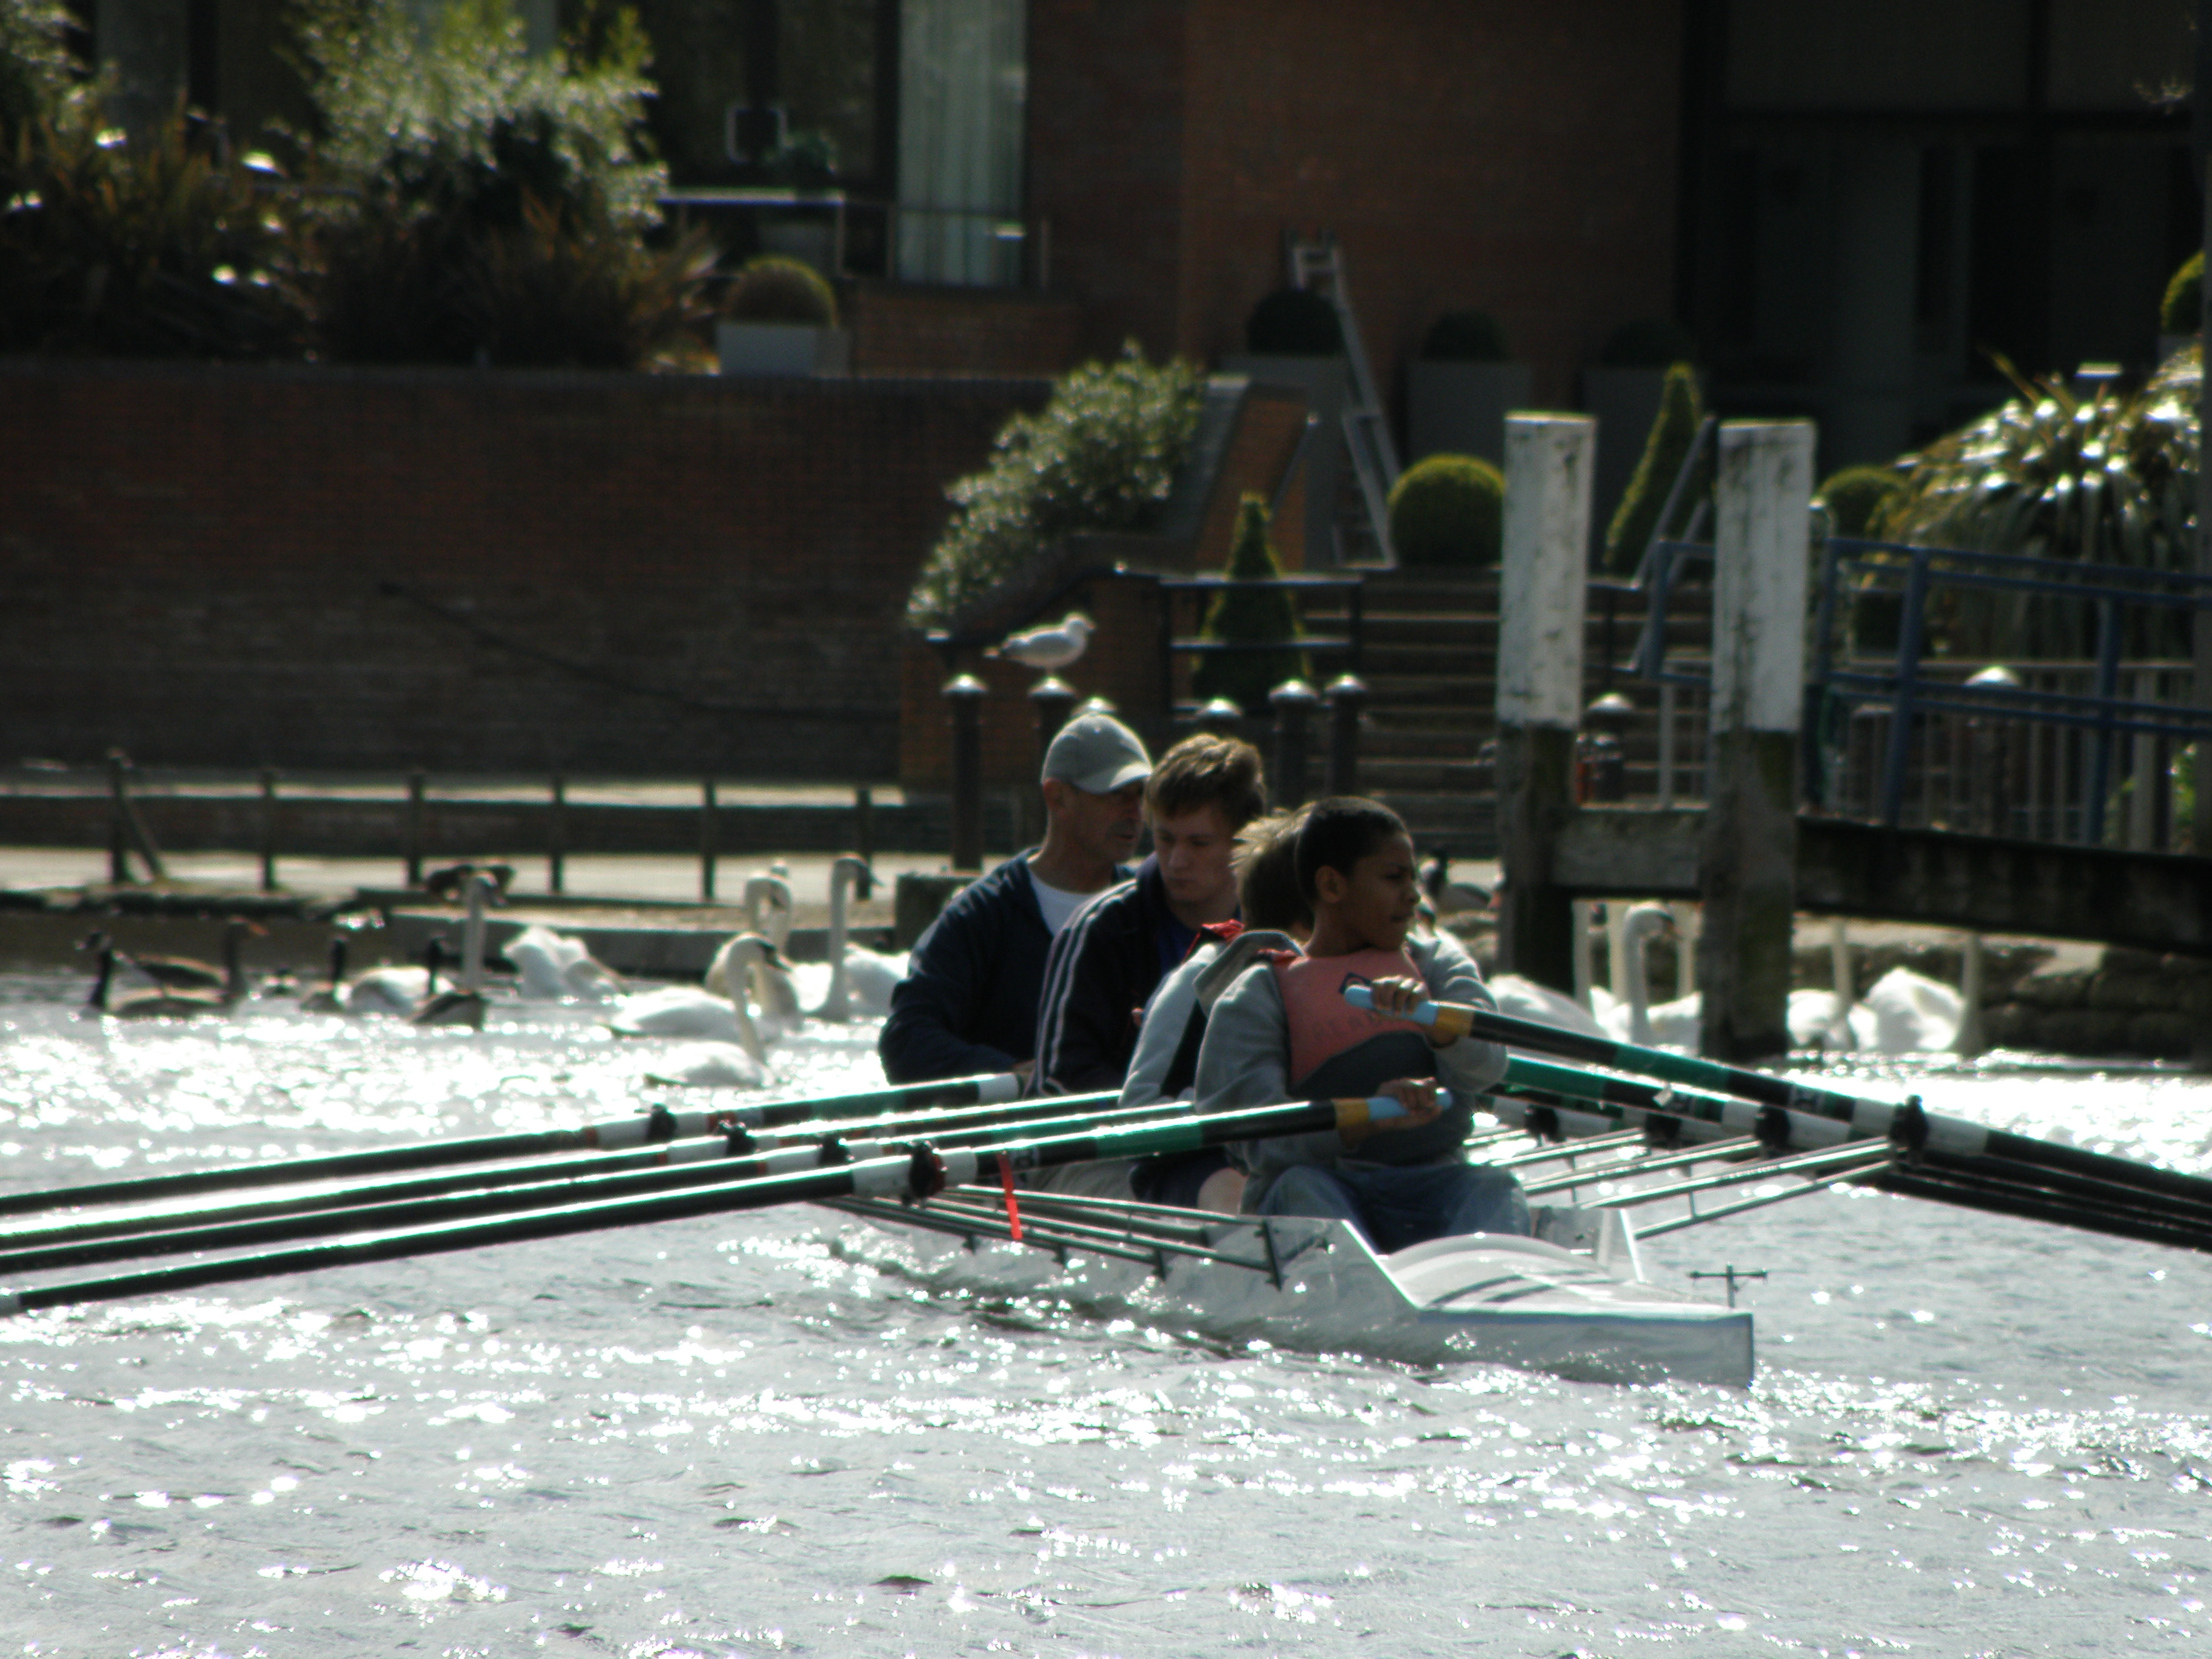 Rowing in a Four